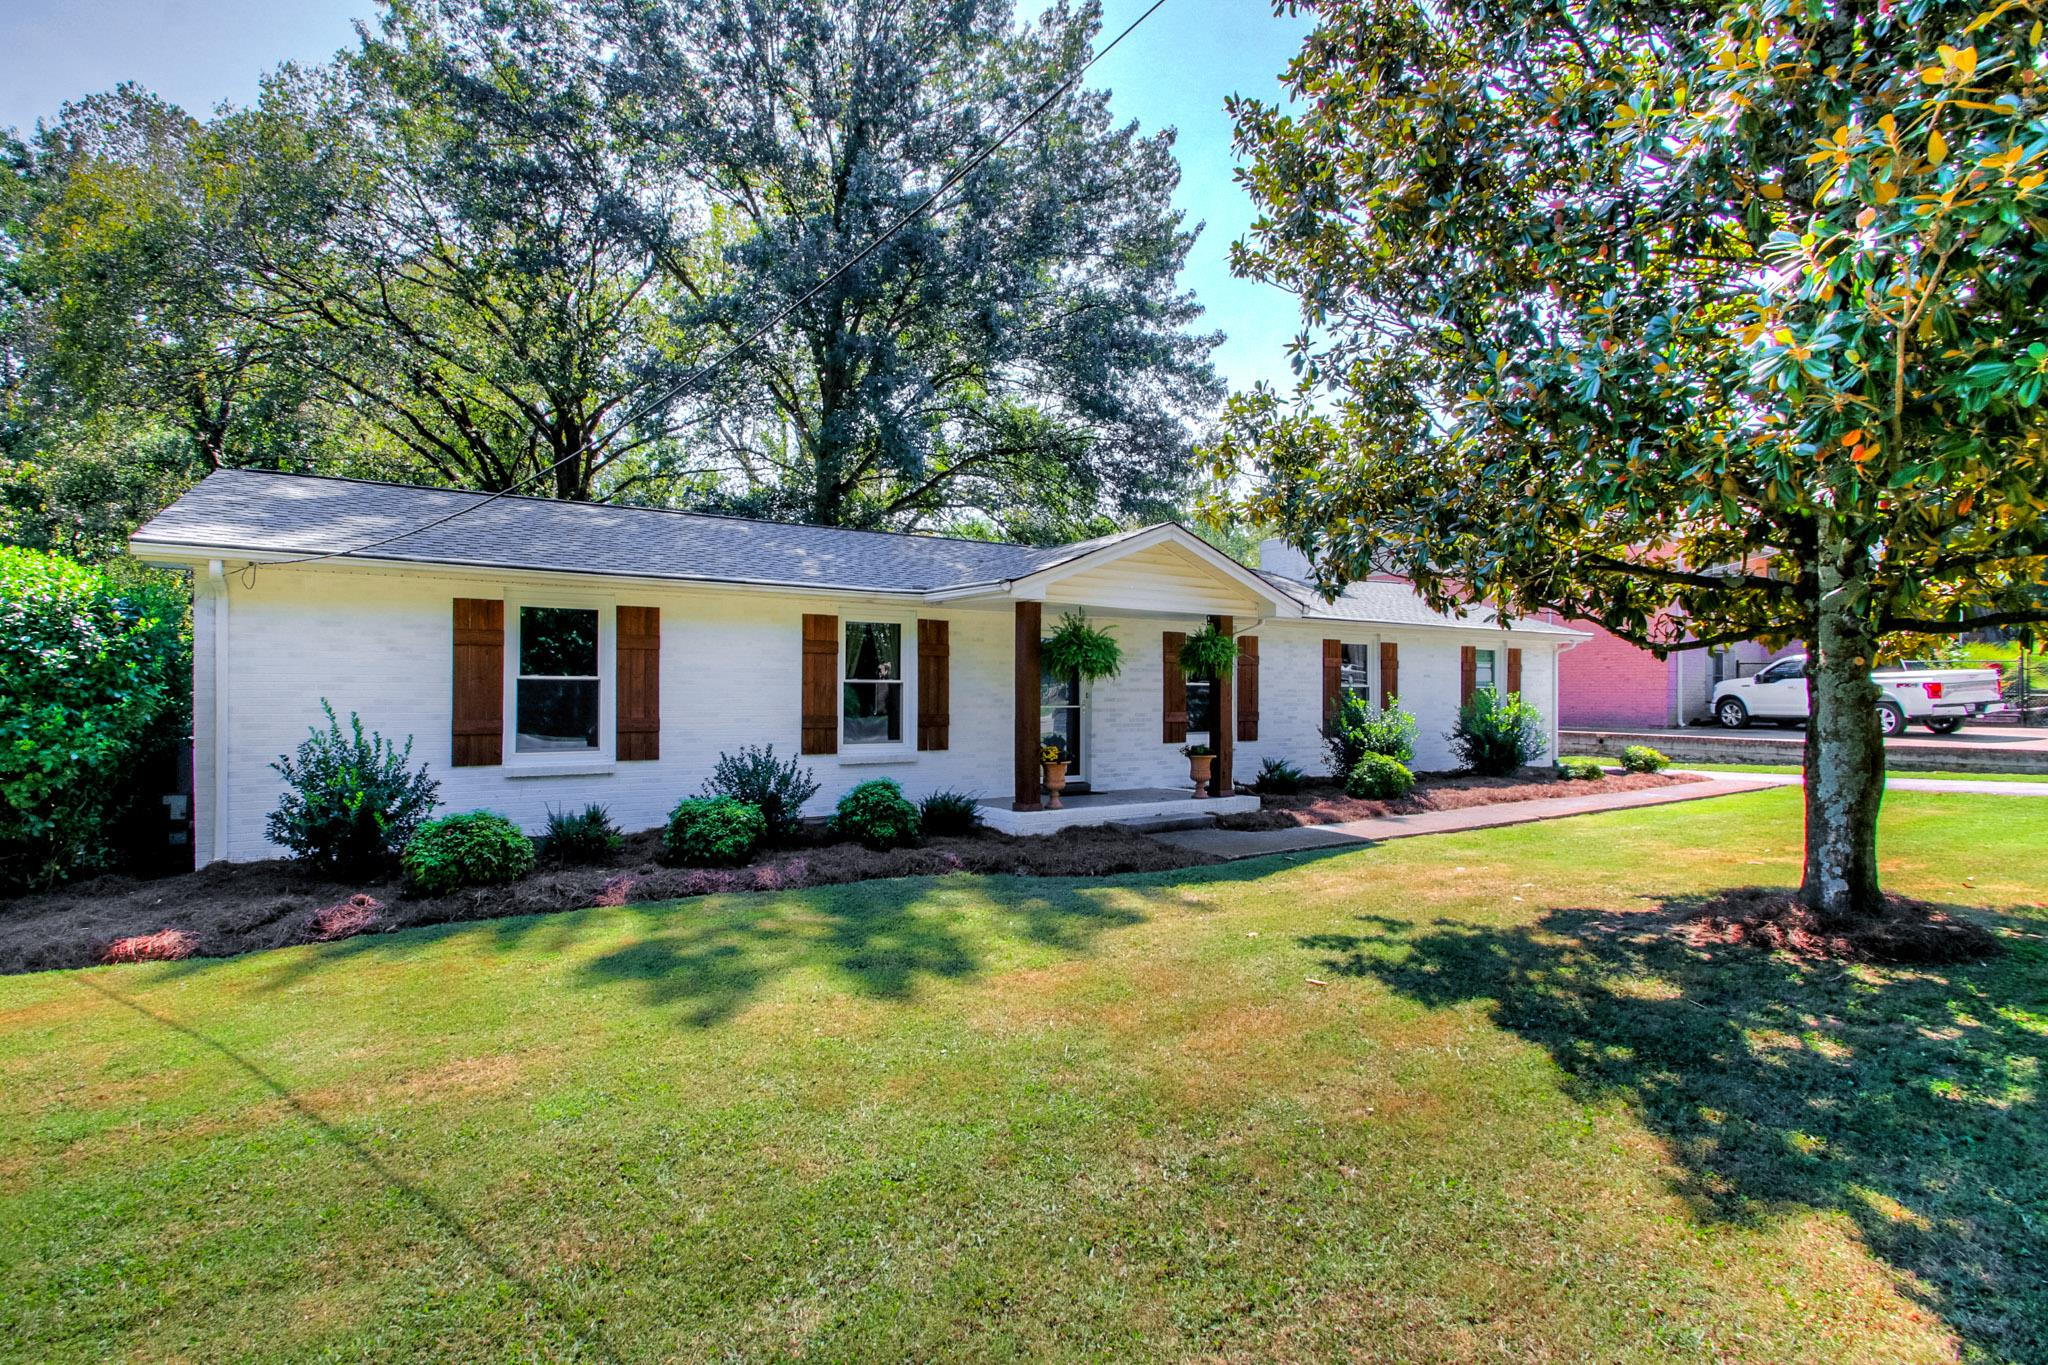 444 Foothill Dr, Nashville, TN 37217 - Nashville, TN real estate listing